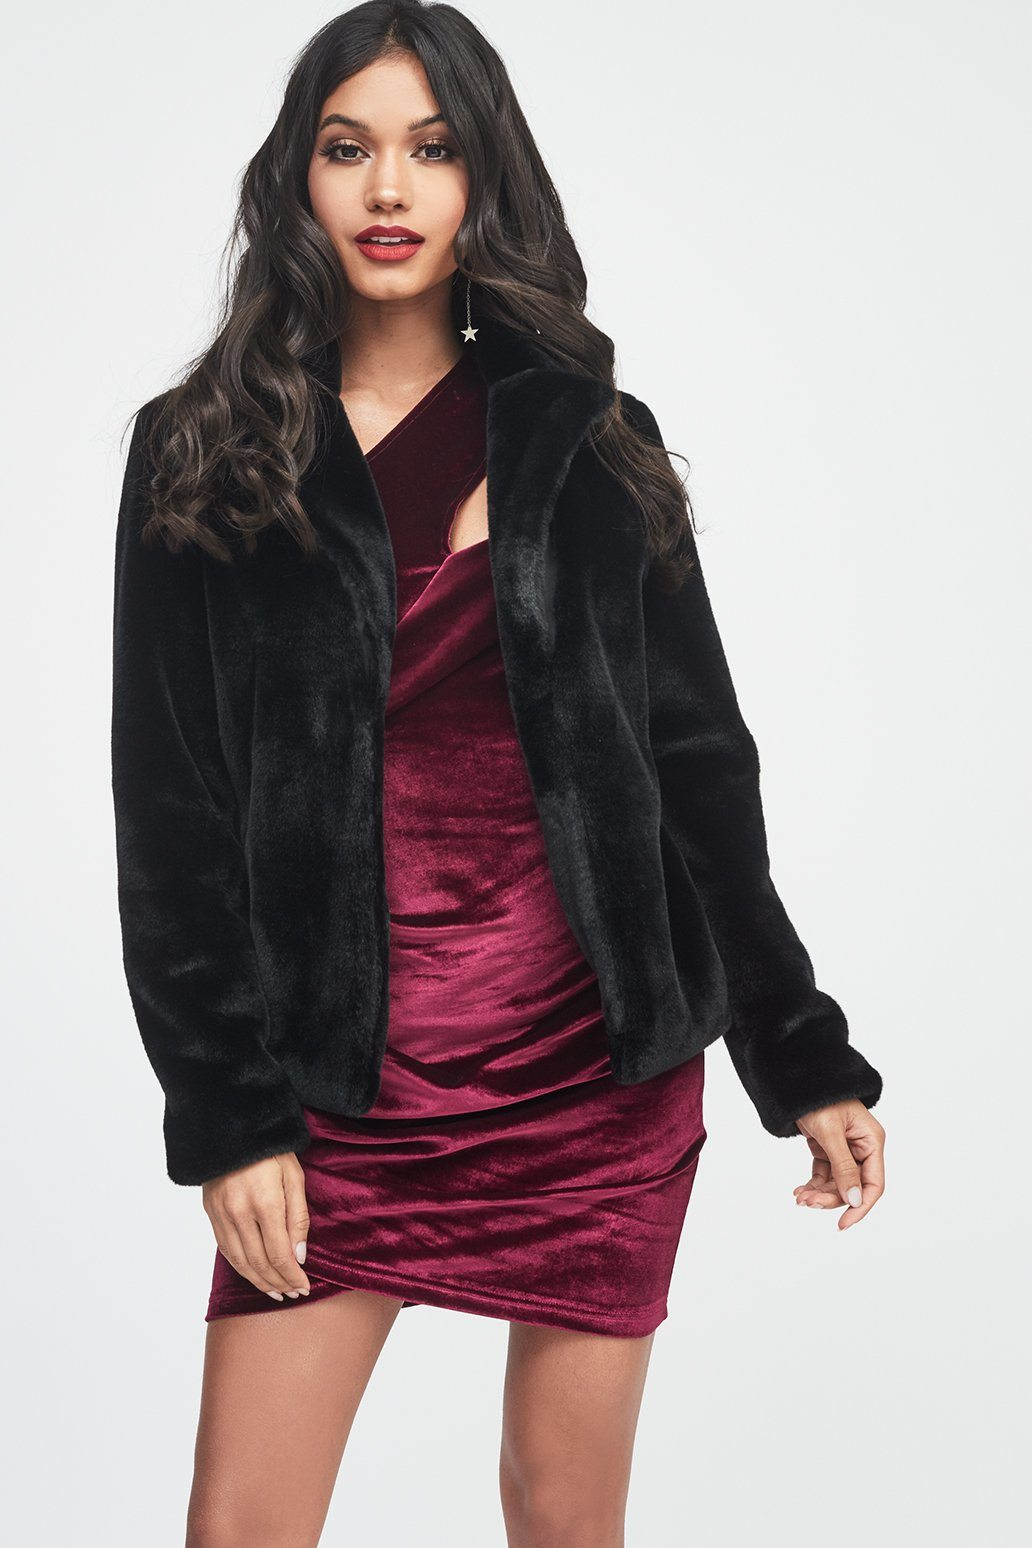 Shorthair Faux Fur Jacket in Black